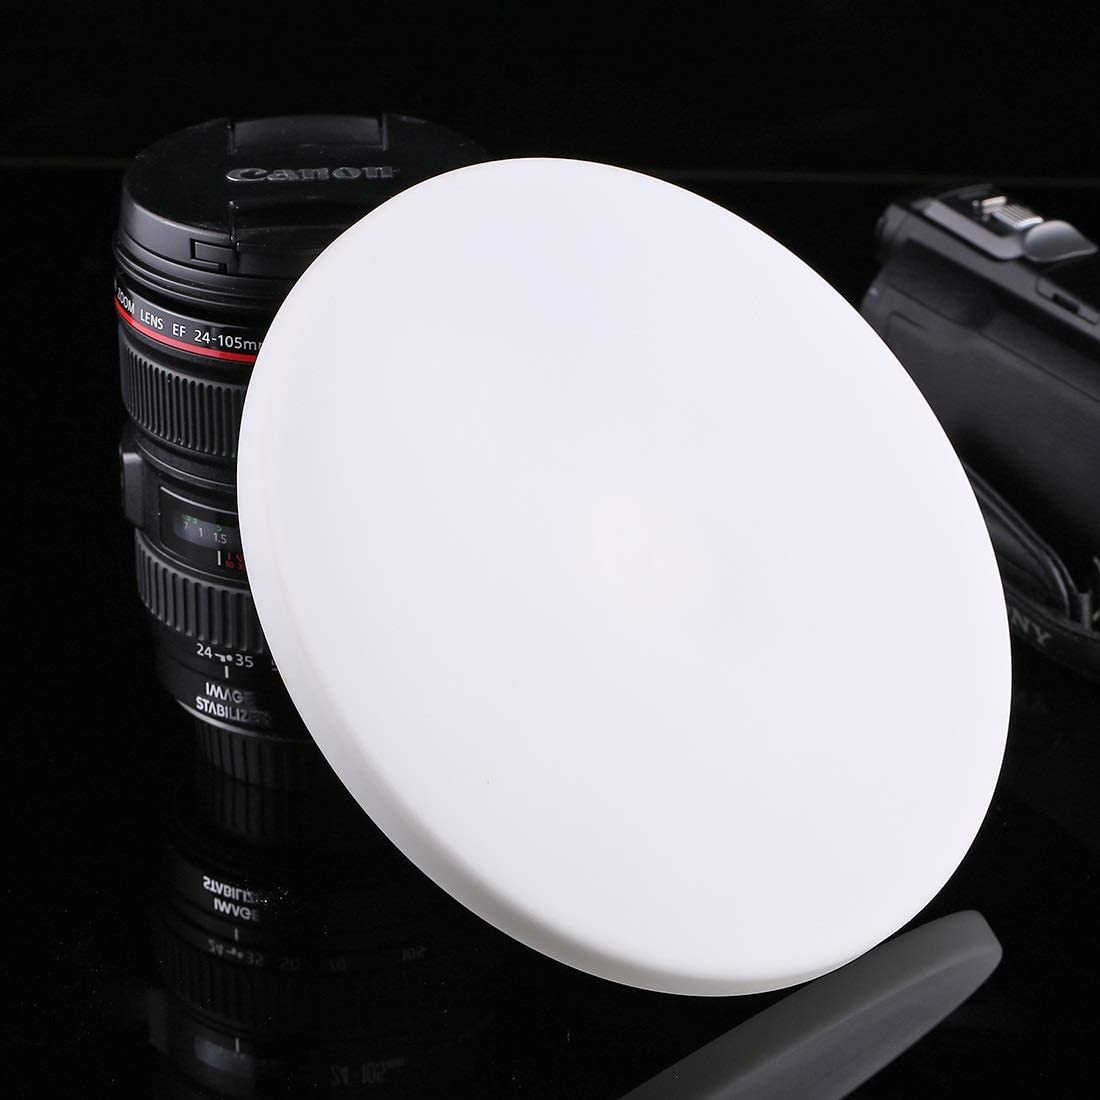 Diameter: 18cm//7inch Durable JINGZ 1//4 Screw Interface Round Tray